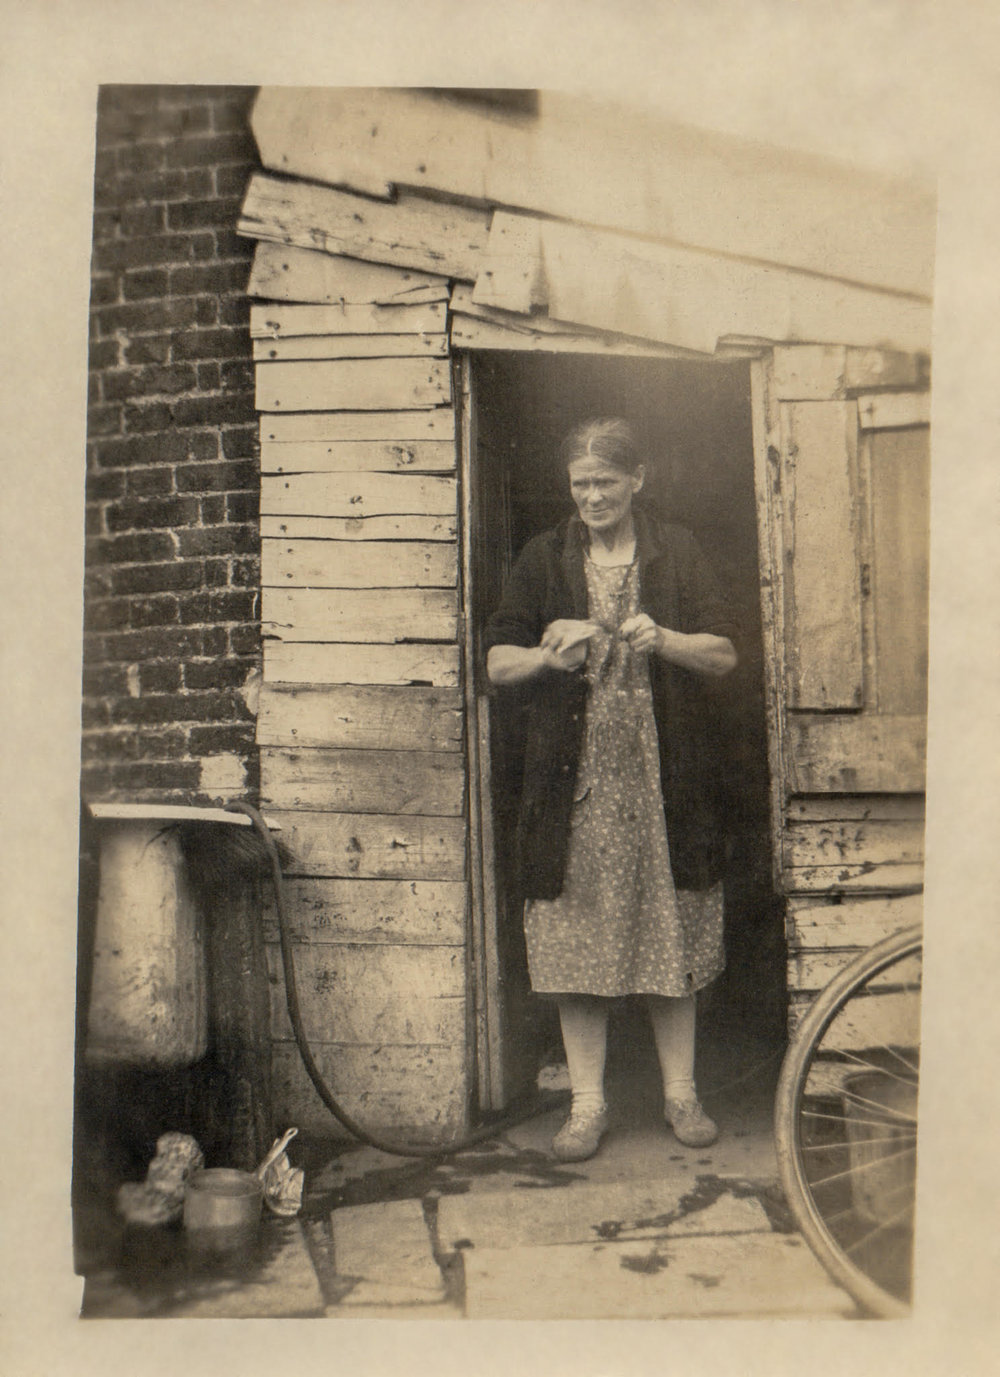 Ada Watts in the doorway of the boiler house where pigswill was prepared c 1935. Kindly reproduced by permission of Betty Jacobson nee Watts